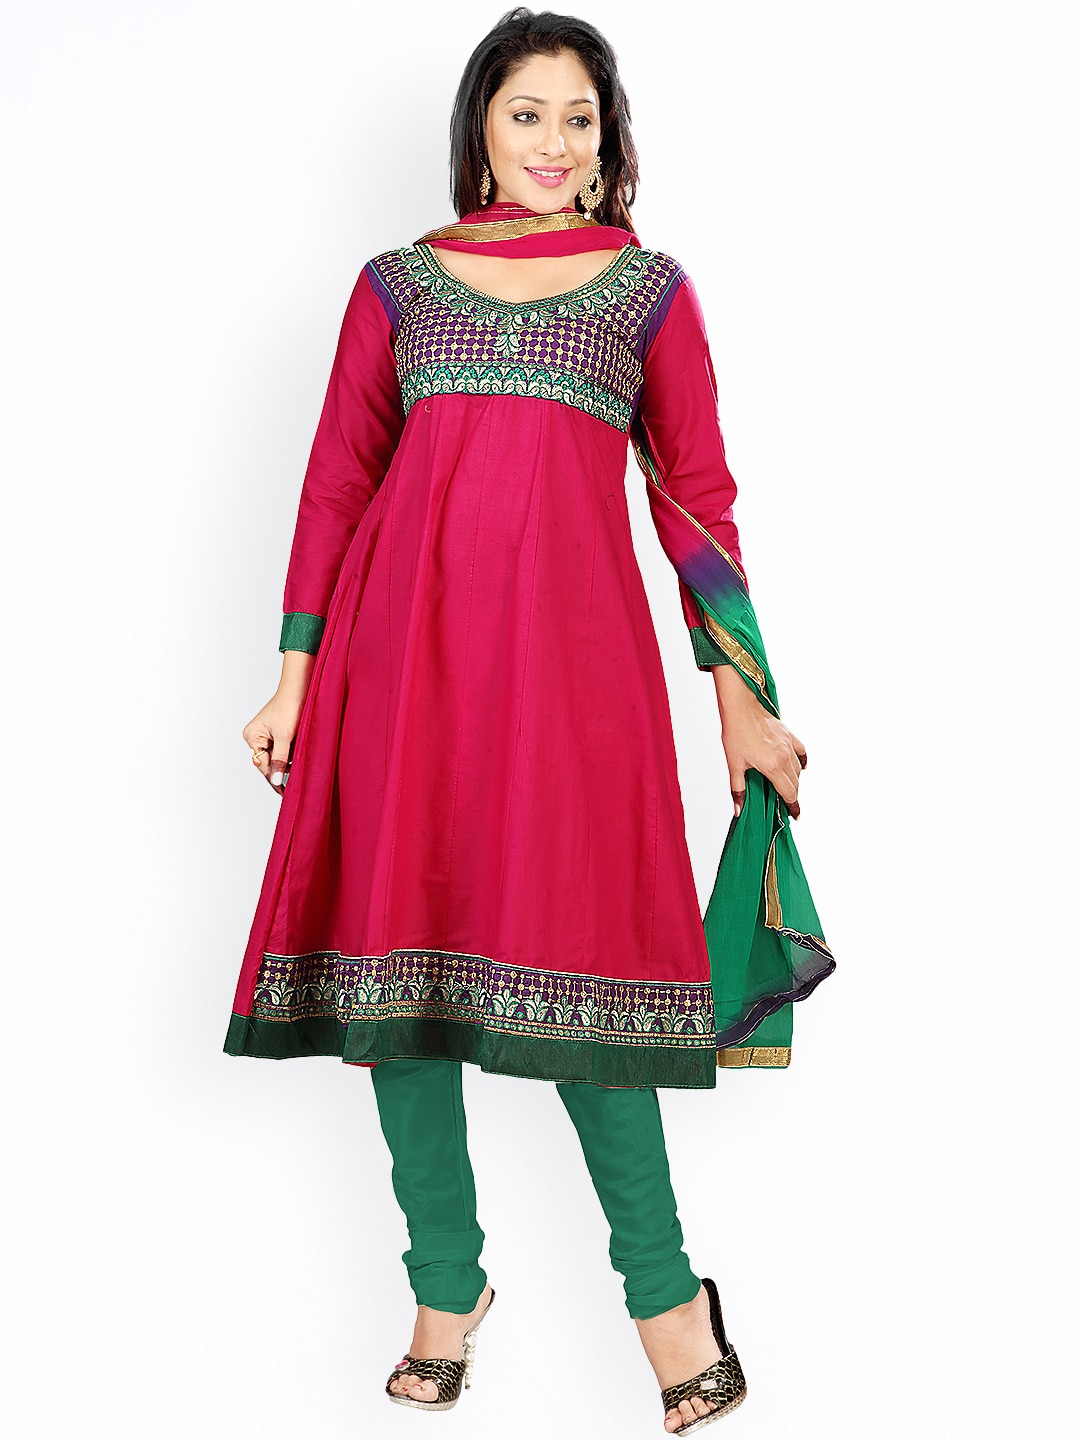 Florence Pink & Green Embroidered Cotton Semi-Stitched Anarkali Dress Material image